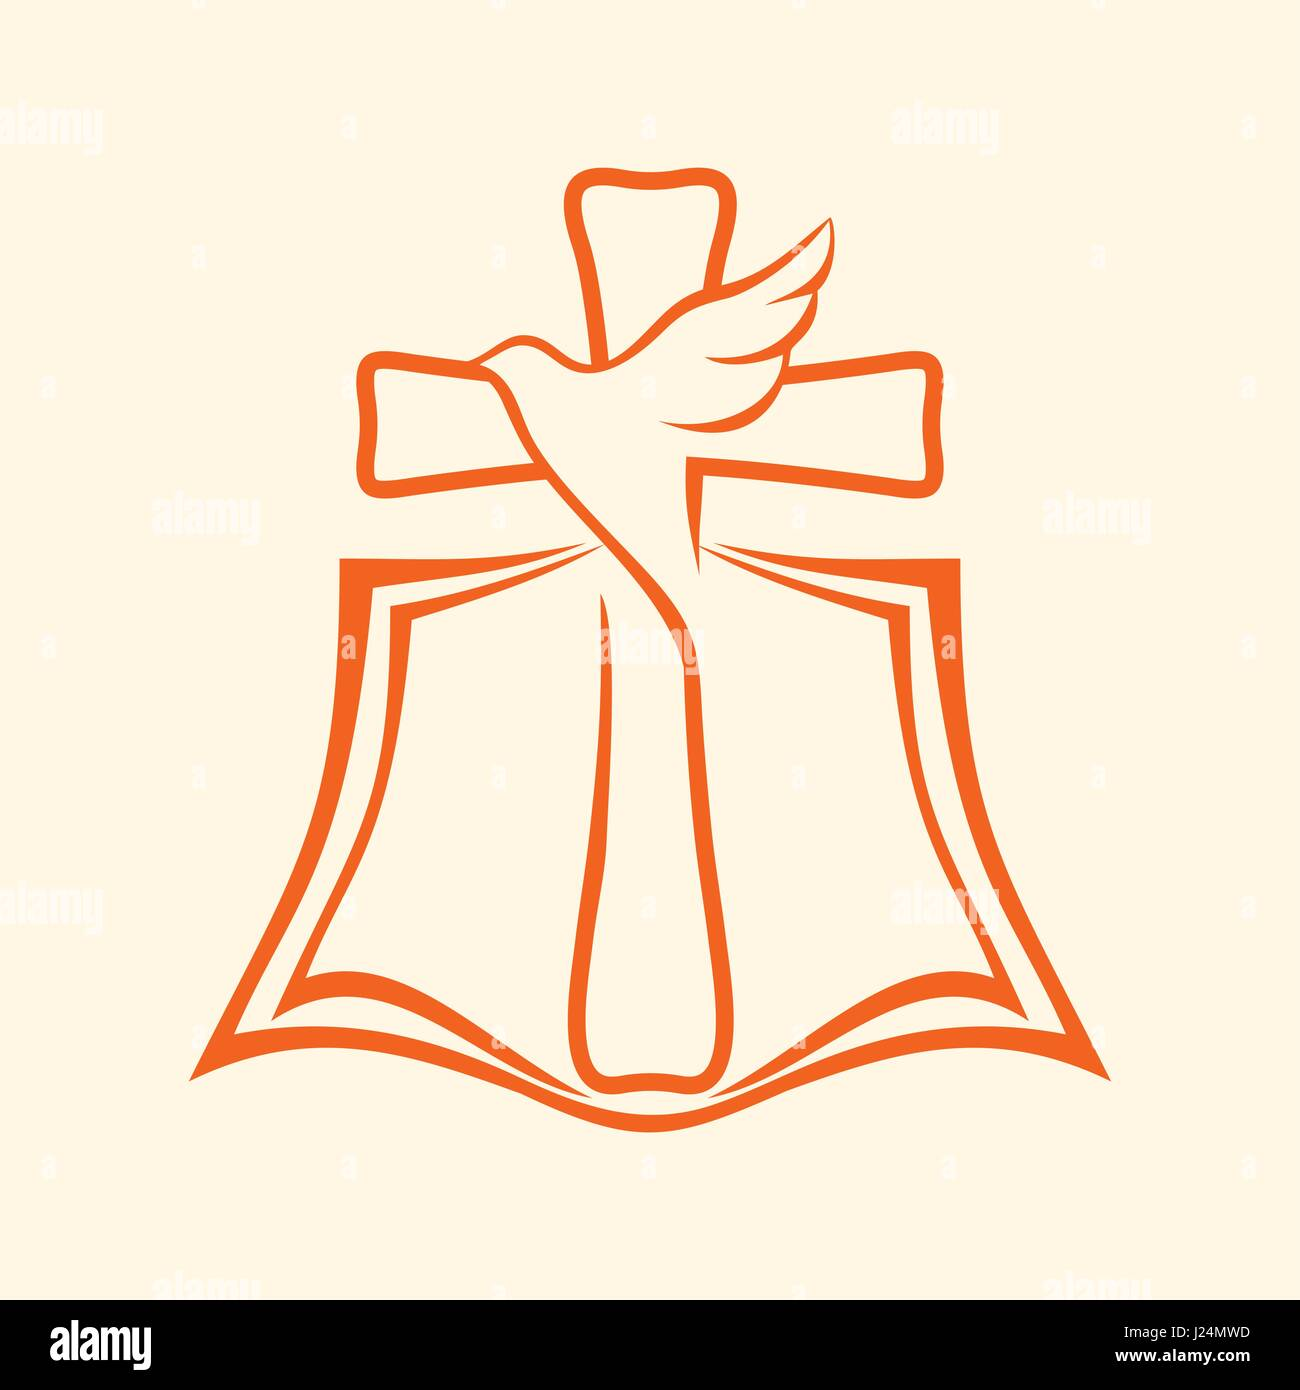 Church logo christian symbols bible cross and dove stock vector church logo christian symbols bible cross and dove altavistaventures Choice Image